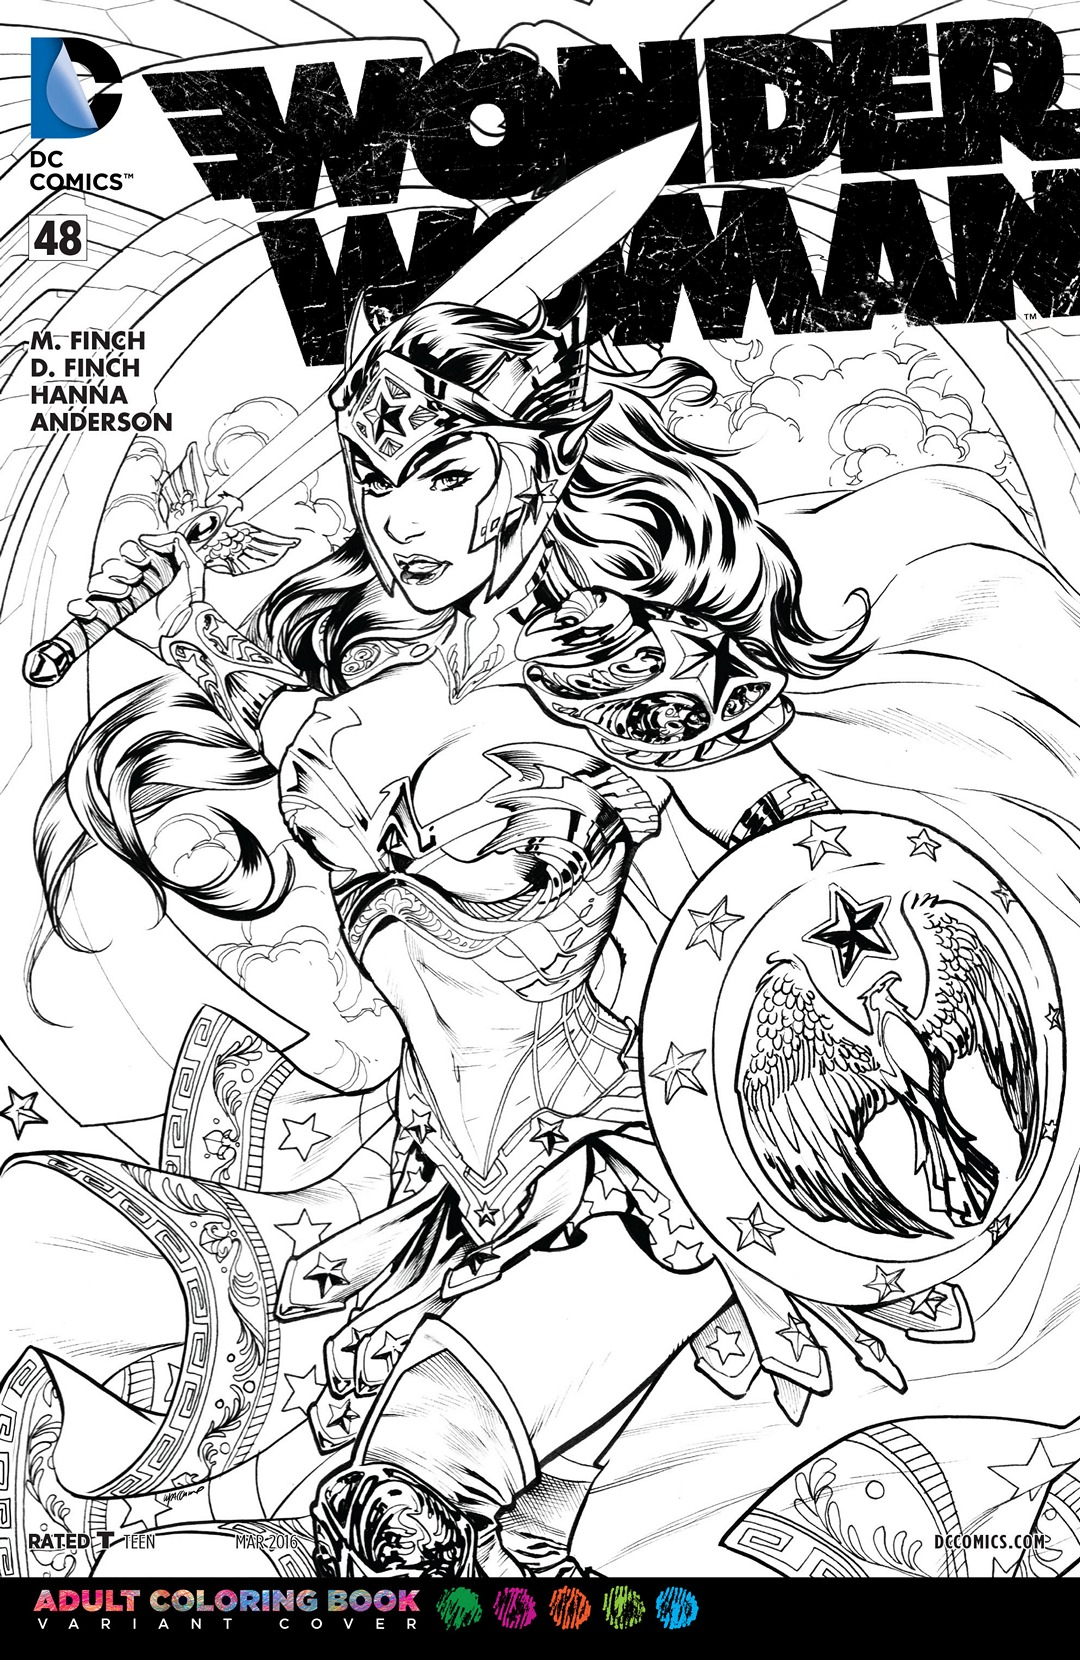 image wonder woman vol 4 48 coloring book variant jpg dc